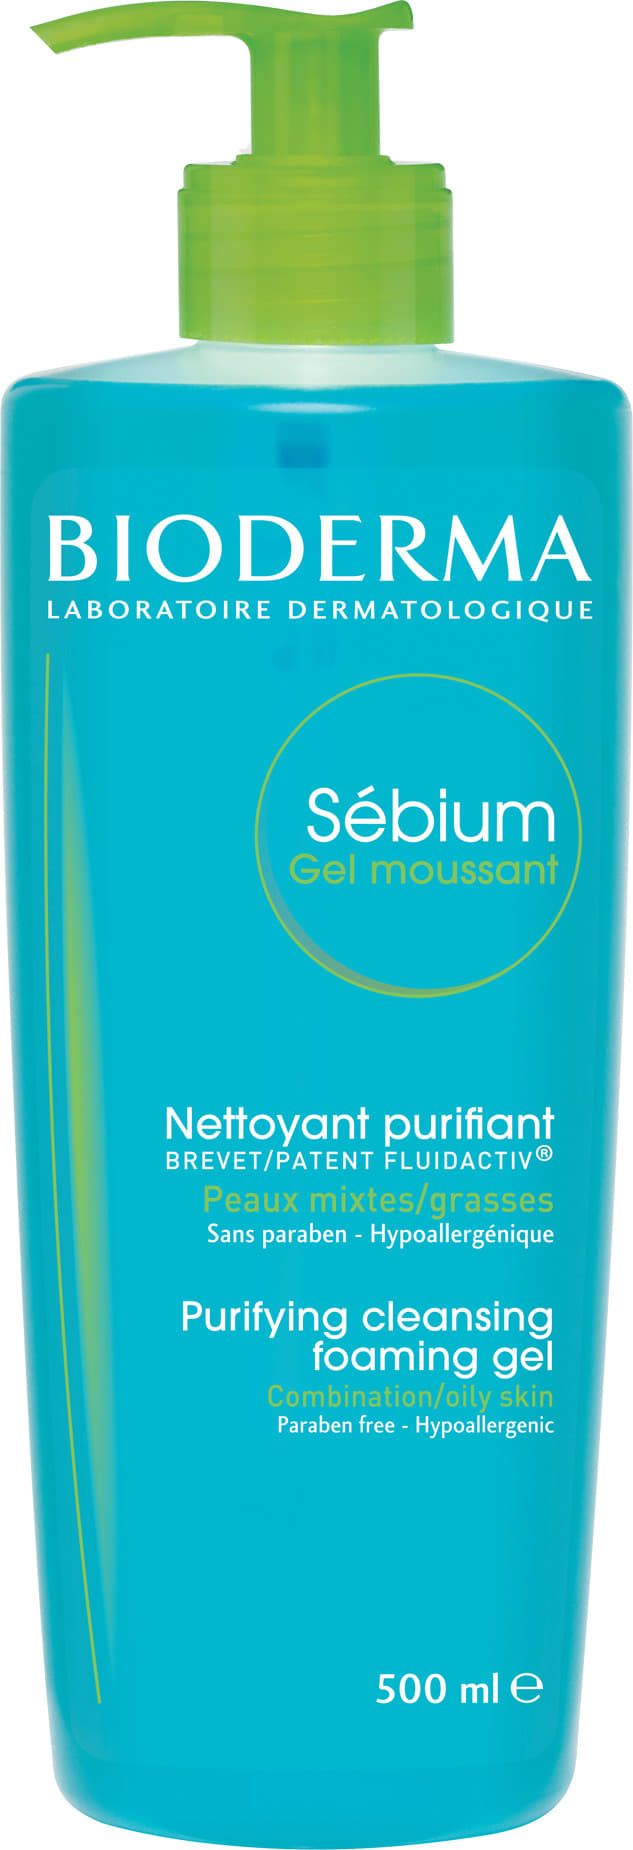 BIODERMA SEBIUM PURIFYING CLEANSING FOAMING GEl